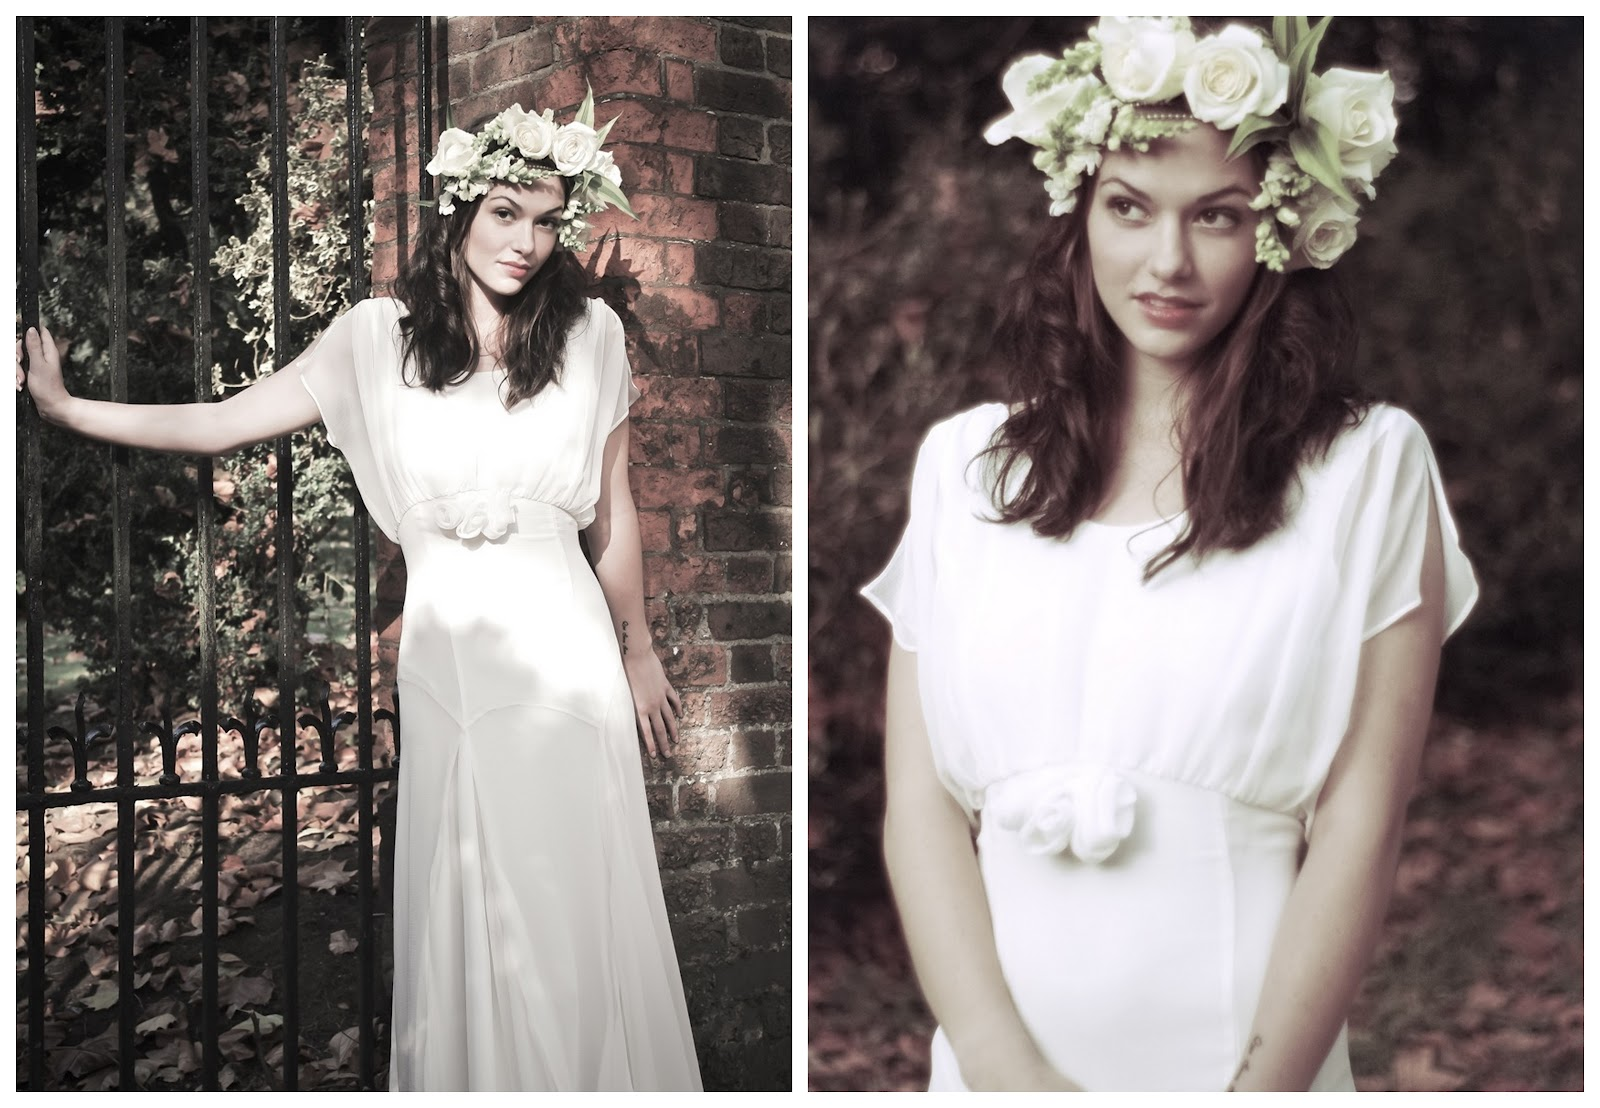 Vintage Chic Wedding Dress : Reasonable but dreamy vintage style wedding dresses